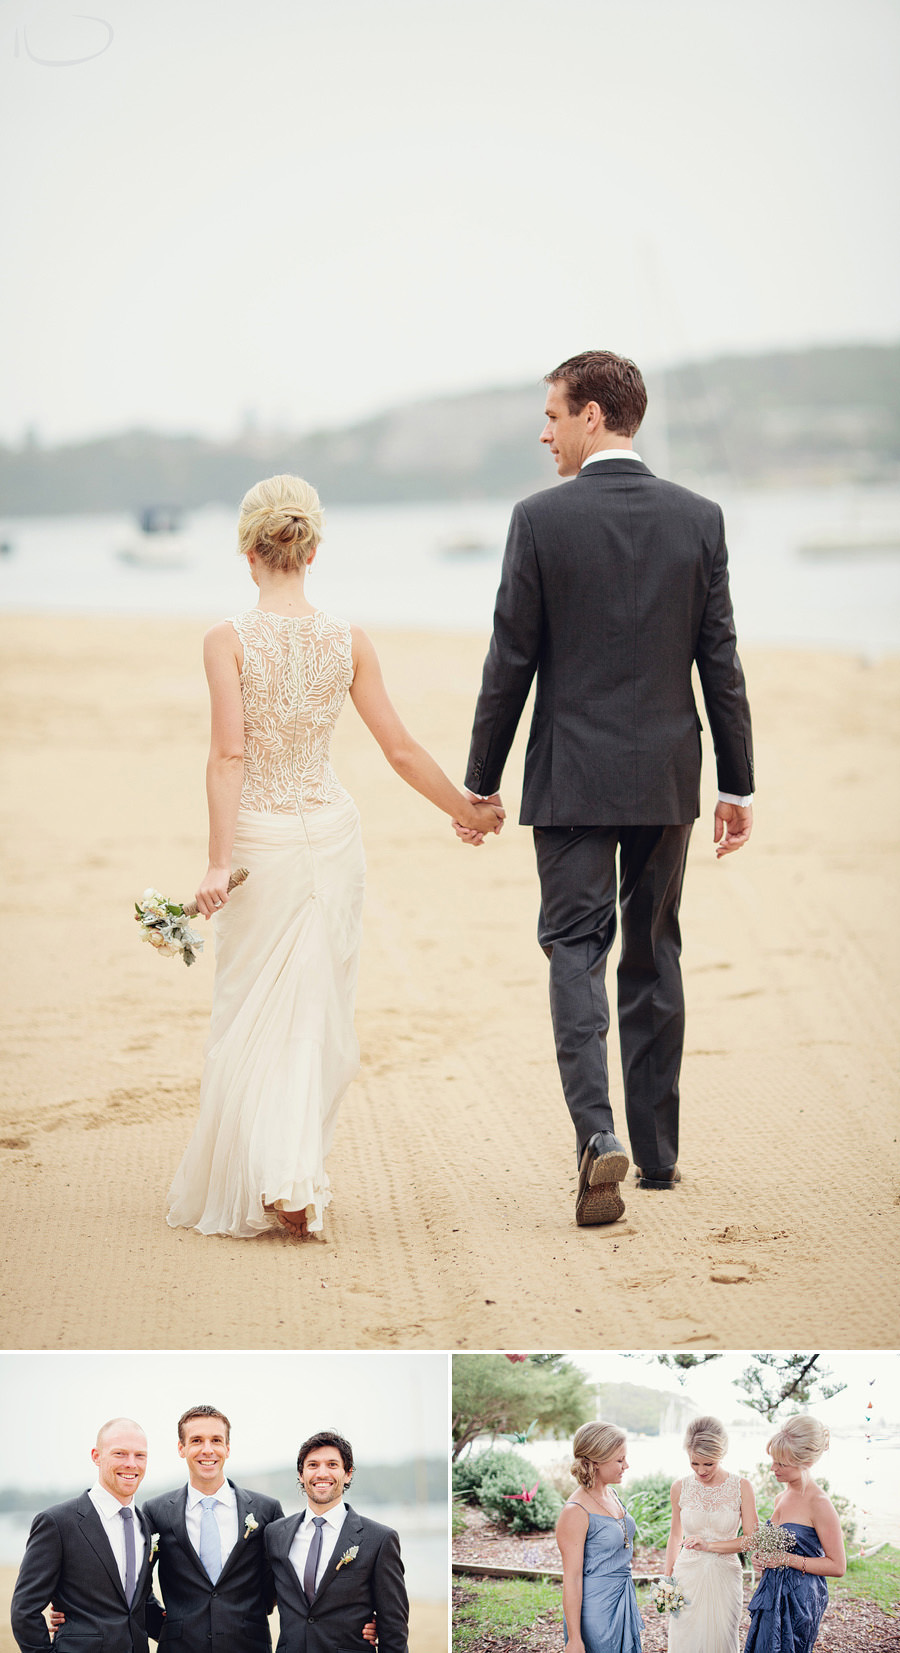 Sydney Wedding Photography: Bride & Groom holding hands walking along beach